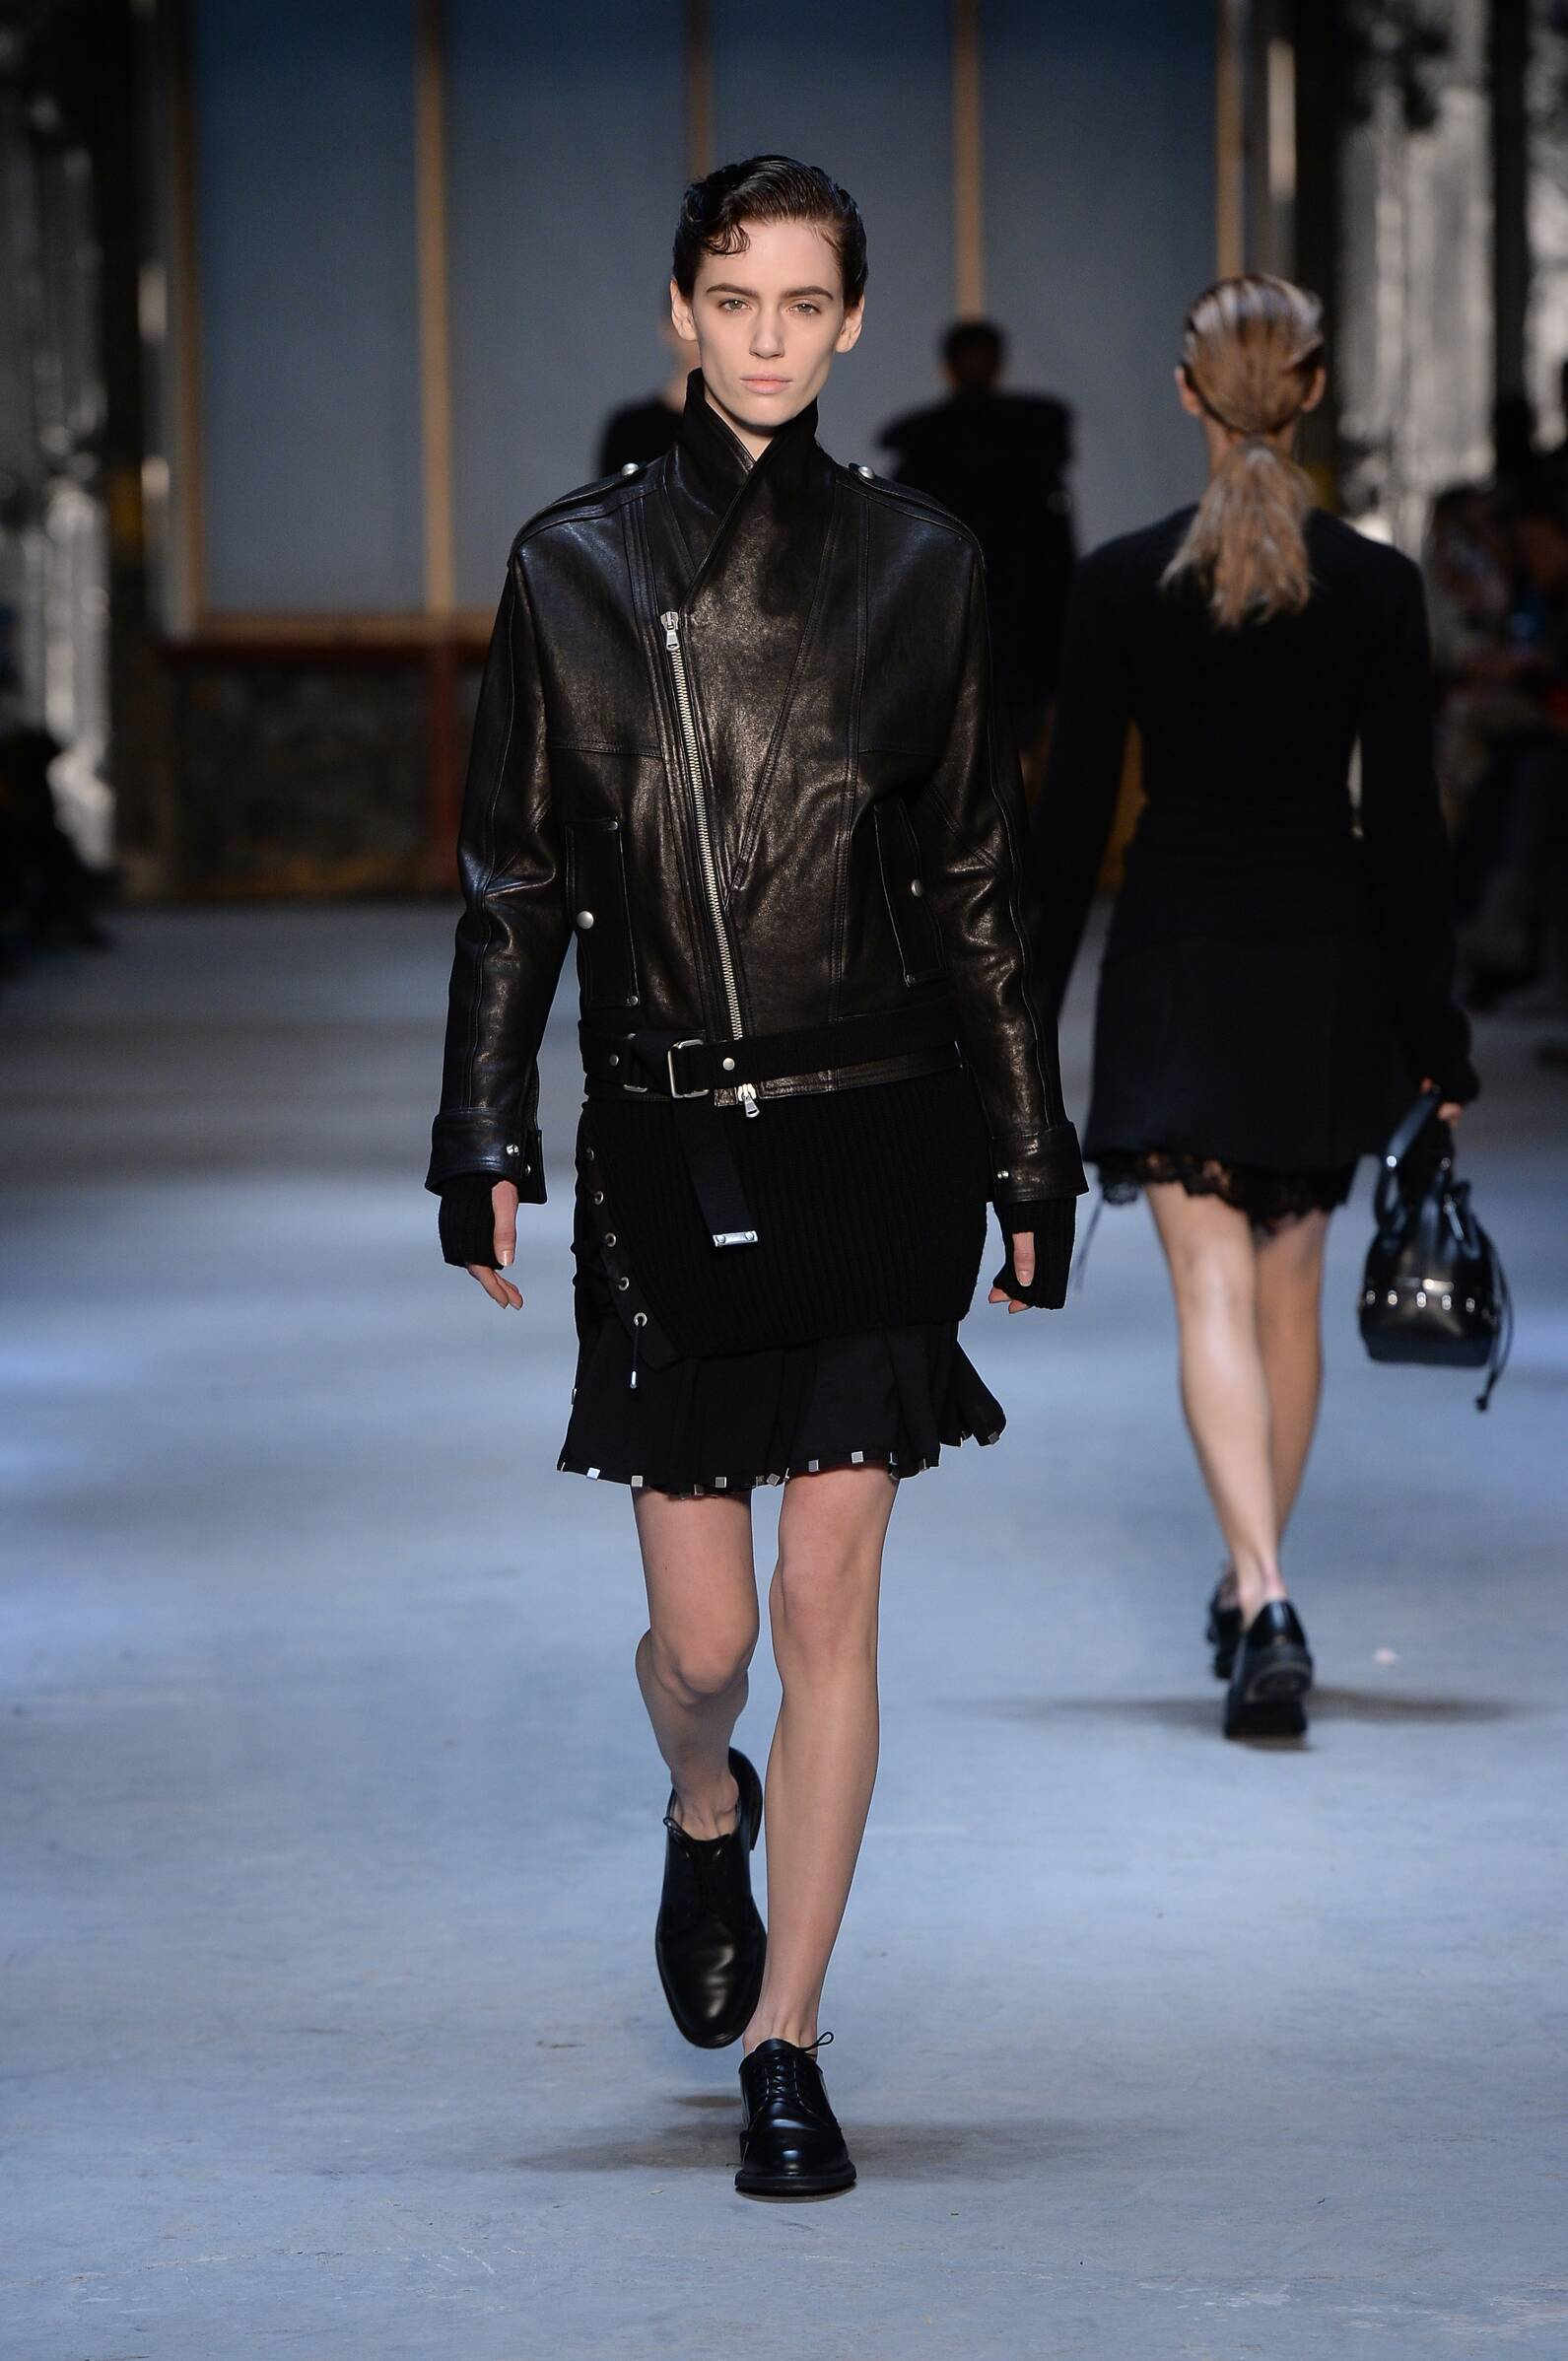 Fashion Woman Model Diesel Black Gold Collection Catwalk